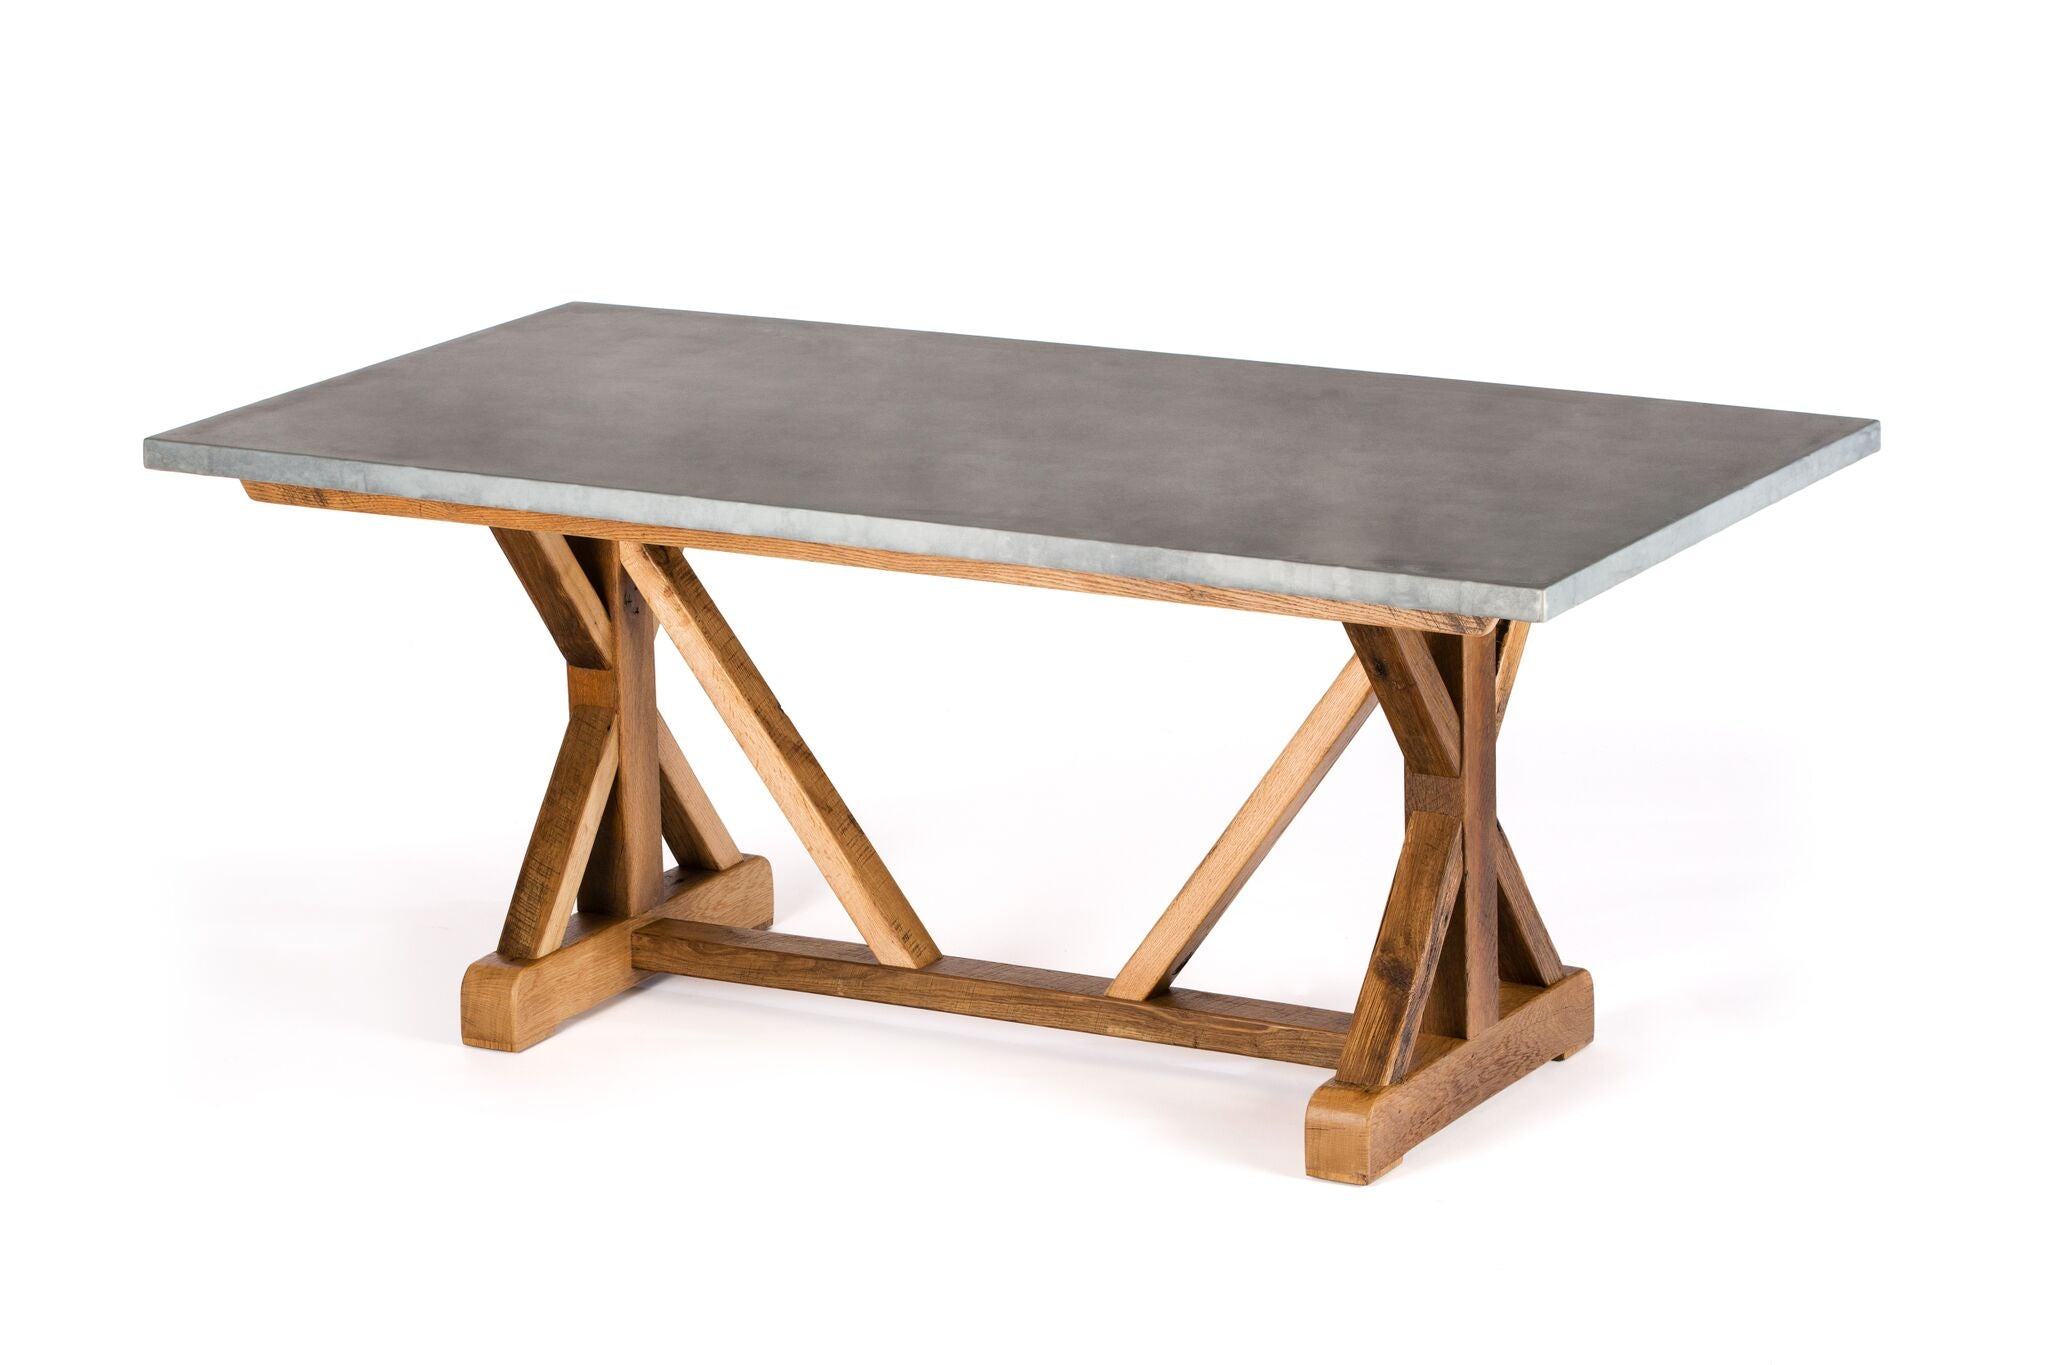 "Zinc Rectangular Table | French Trestle Table | CLASSIC | Dark Brown on Reclaimed Oak | CUSTOM SIZE 60""L 37""W 30""H 